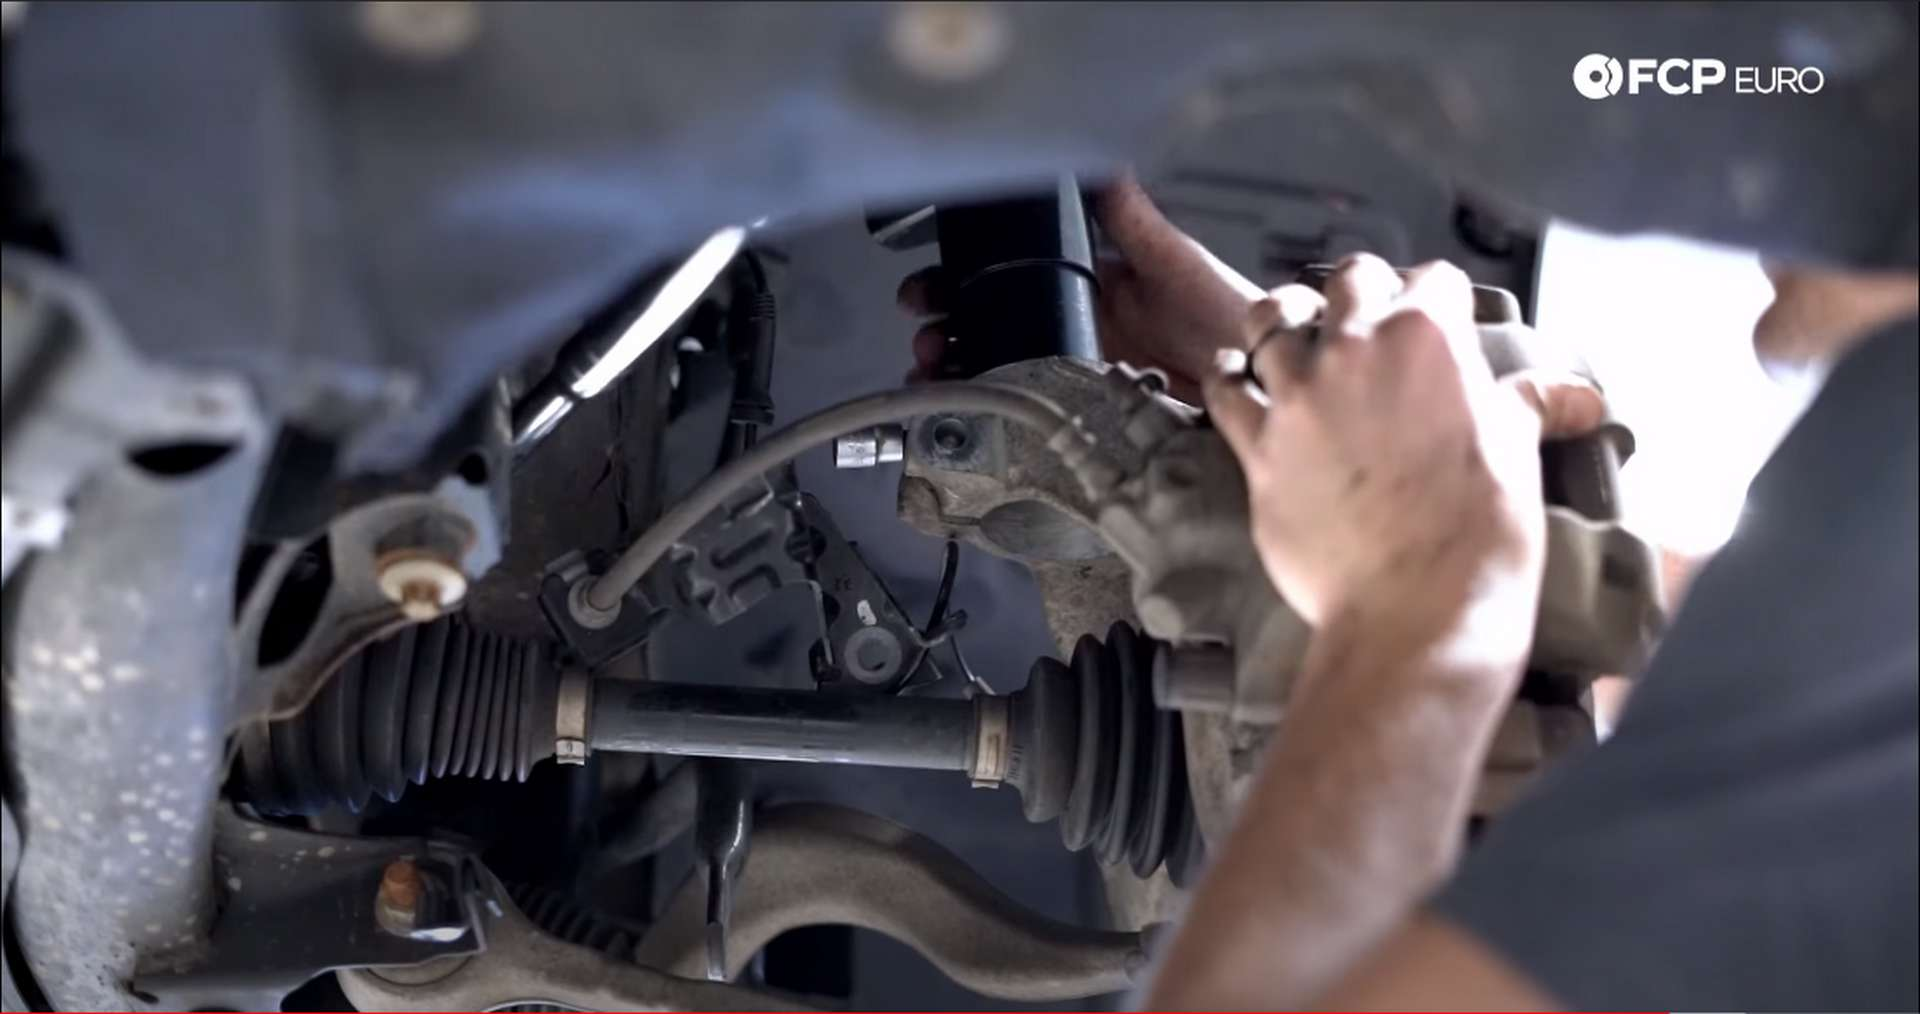 DIY BMW F30 xDrive Coilovers reuniting the knuckle with the strut